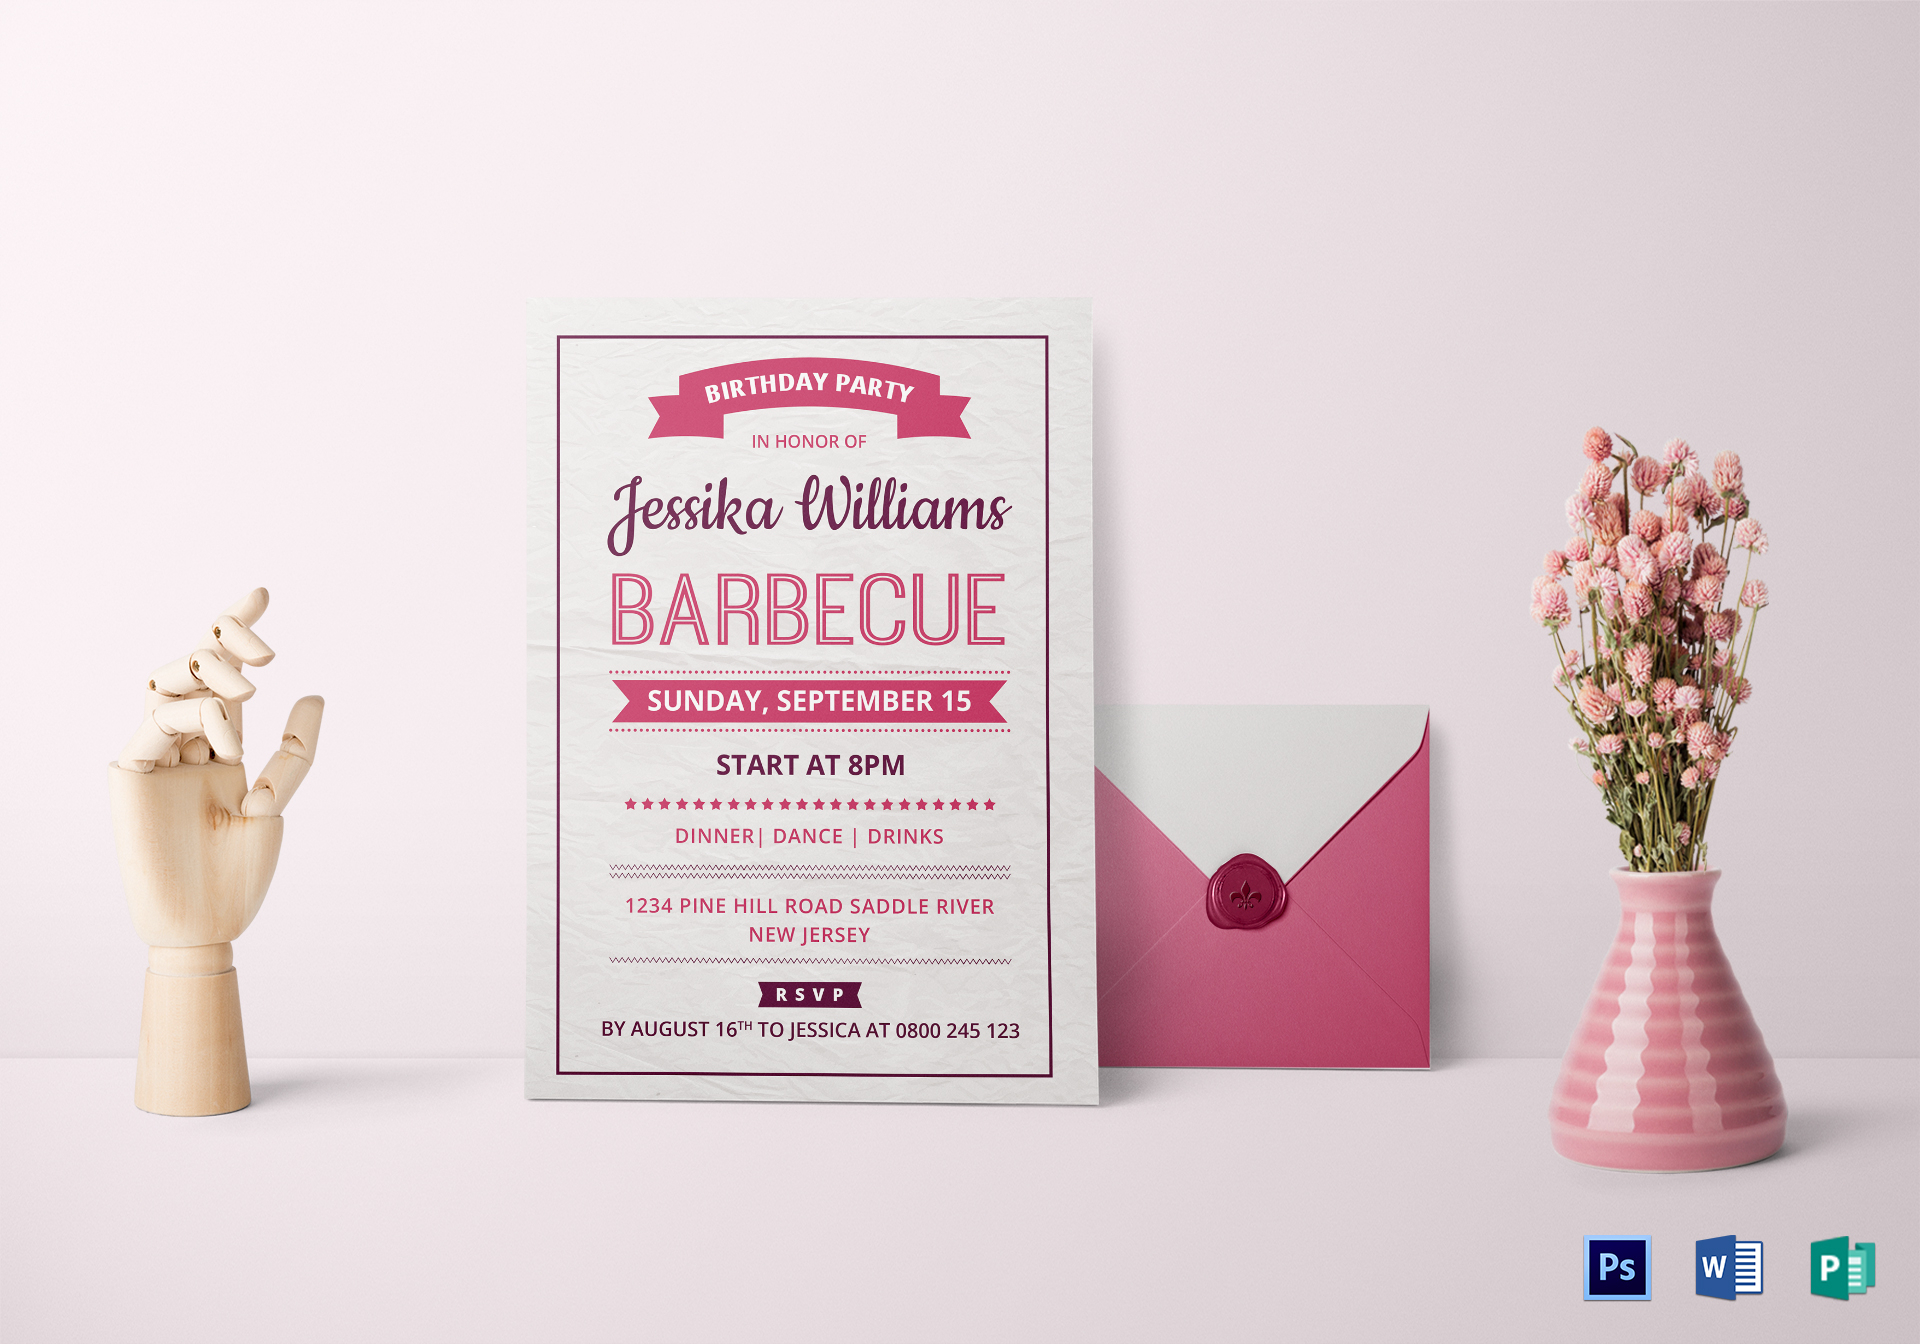 BBQ Birthday Party Invitation Card Design Template in Word, PSD ...